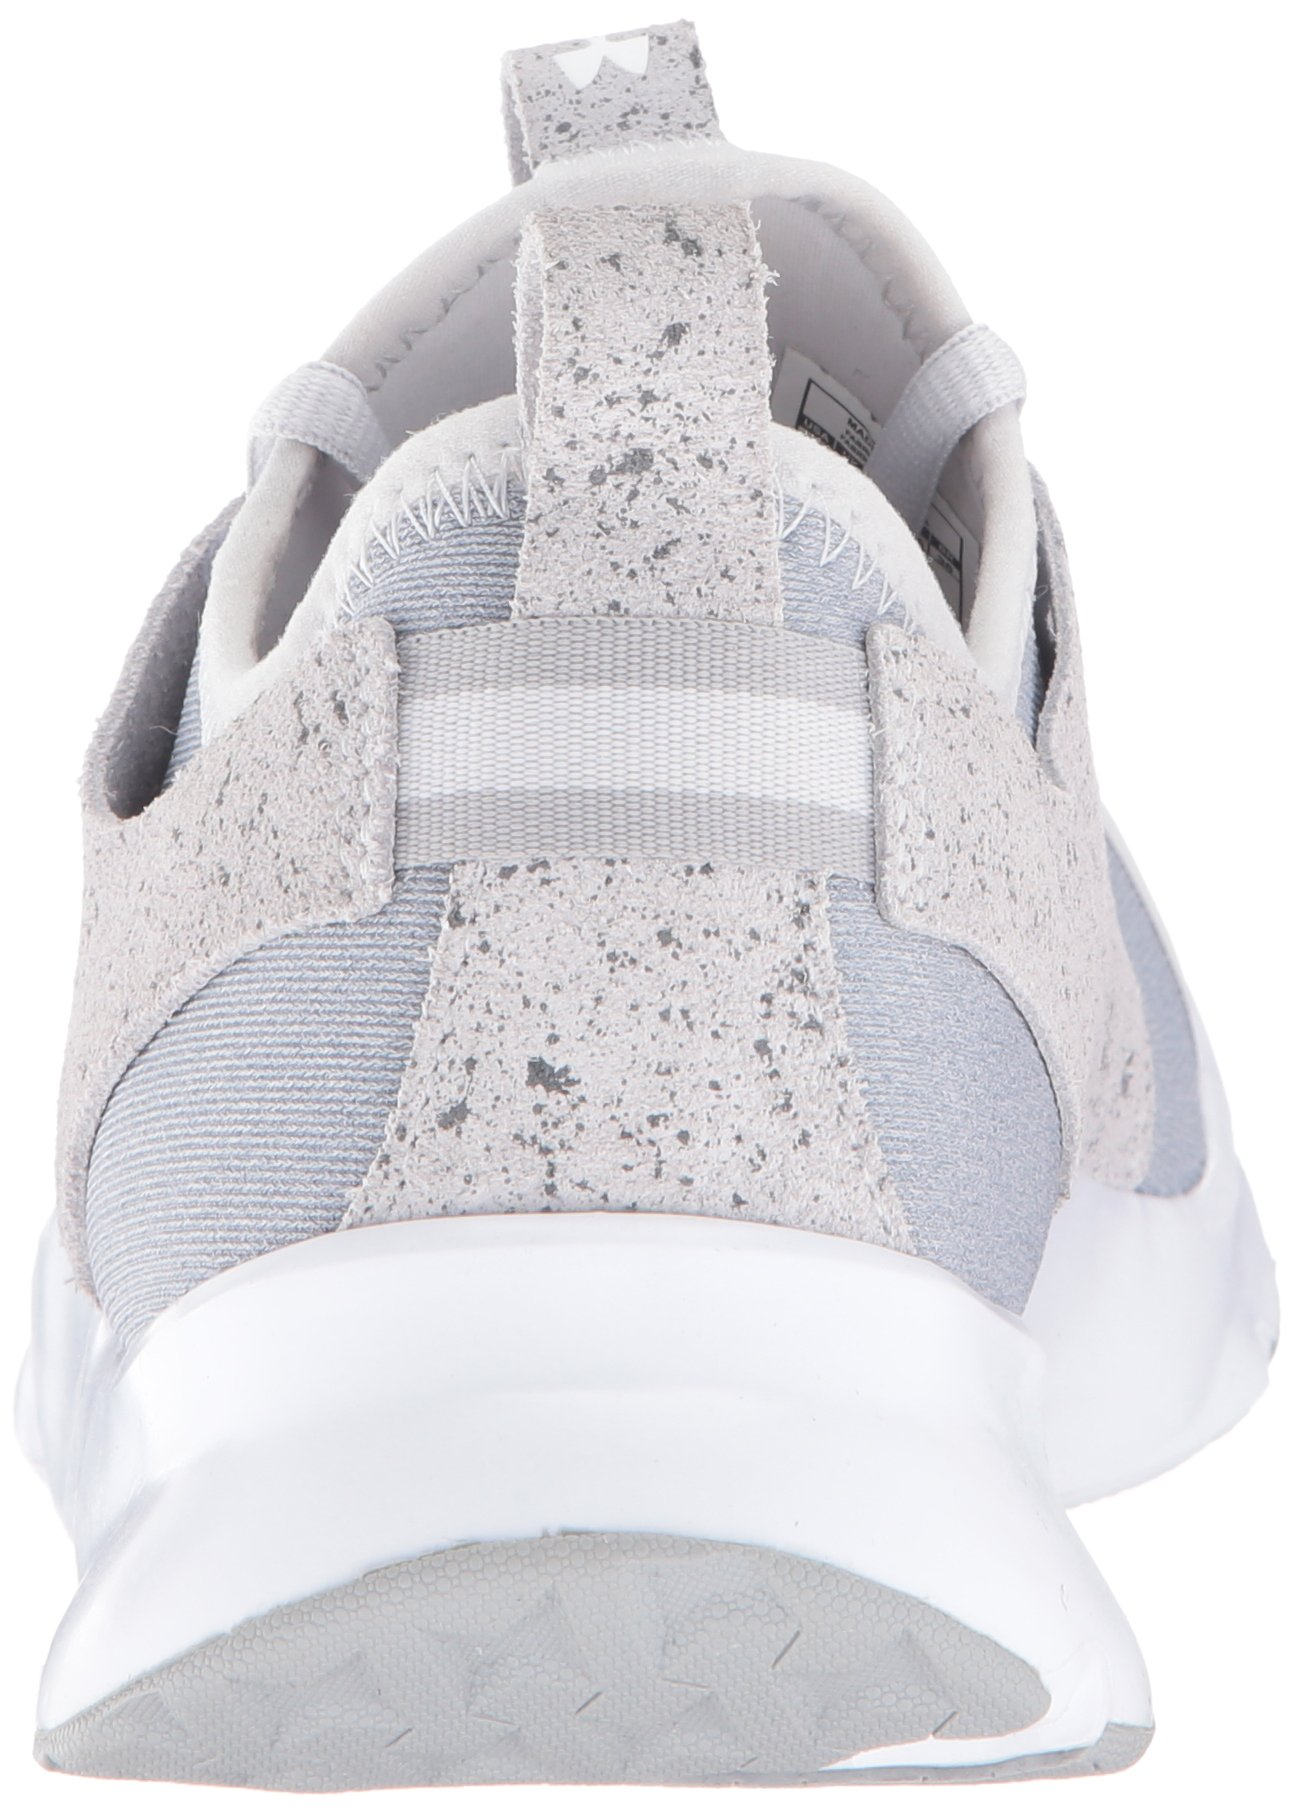 81fugOUHicL - Under Armour Women's Drift Mineral Running Shoes